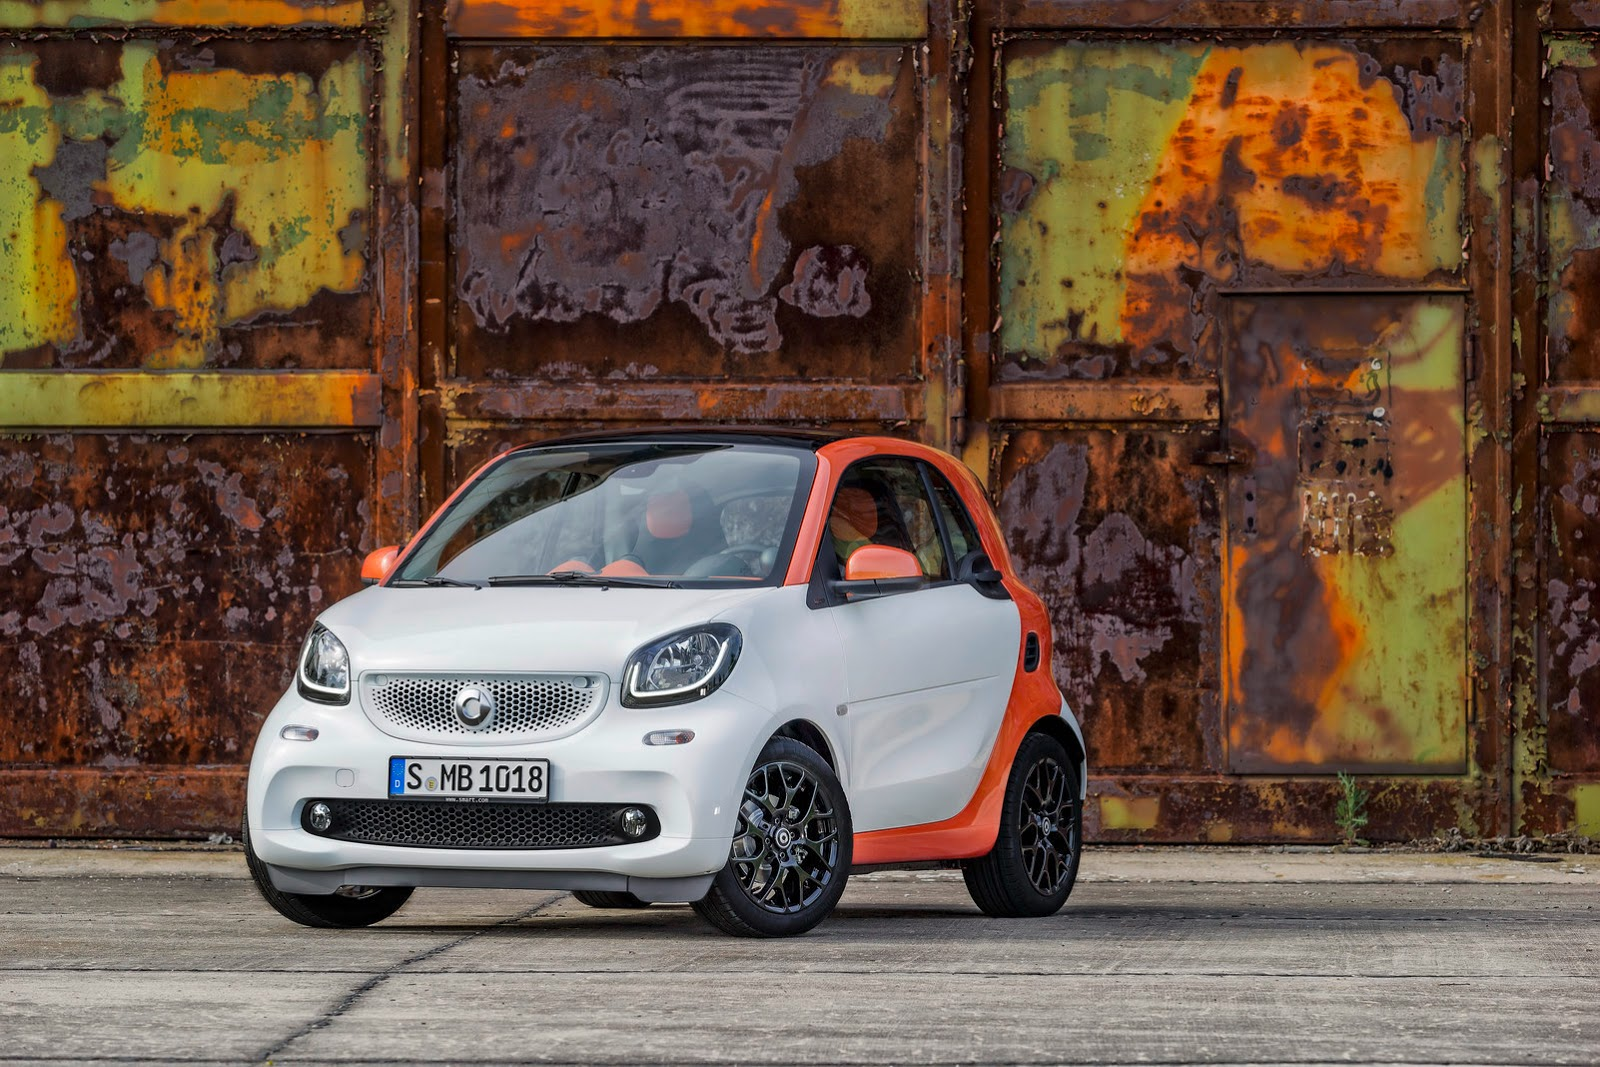 2015 smart fortwo forfour pricing announced first deliveries this november autoevolution. Black Bedroom Furniture Sets. Home Design Ideas